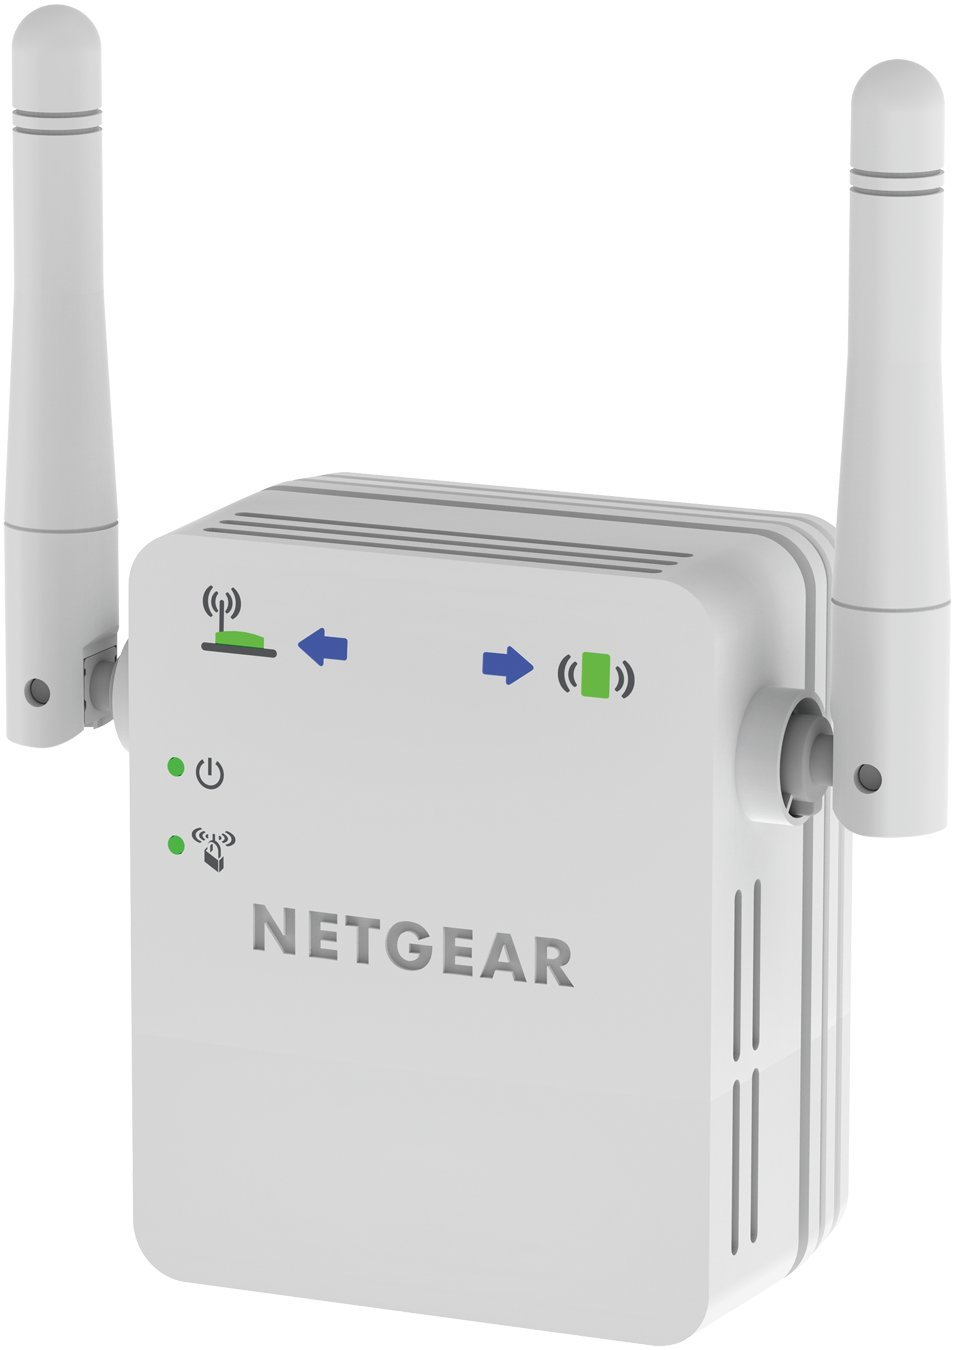 Point d'acc�s WiFi NETGEAR WN3000RP100FRS BLANC